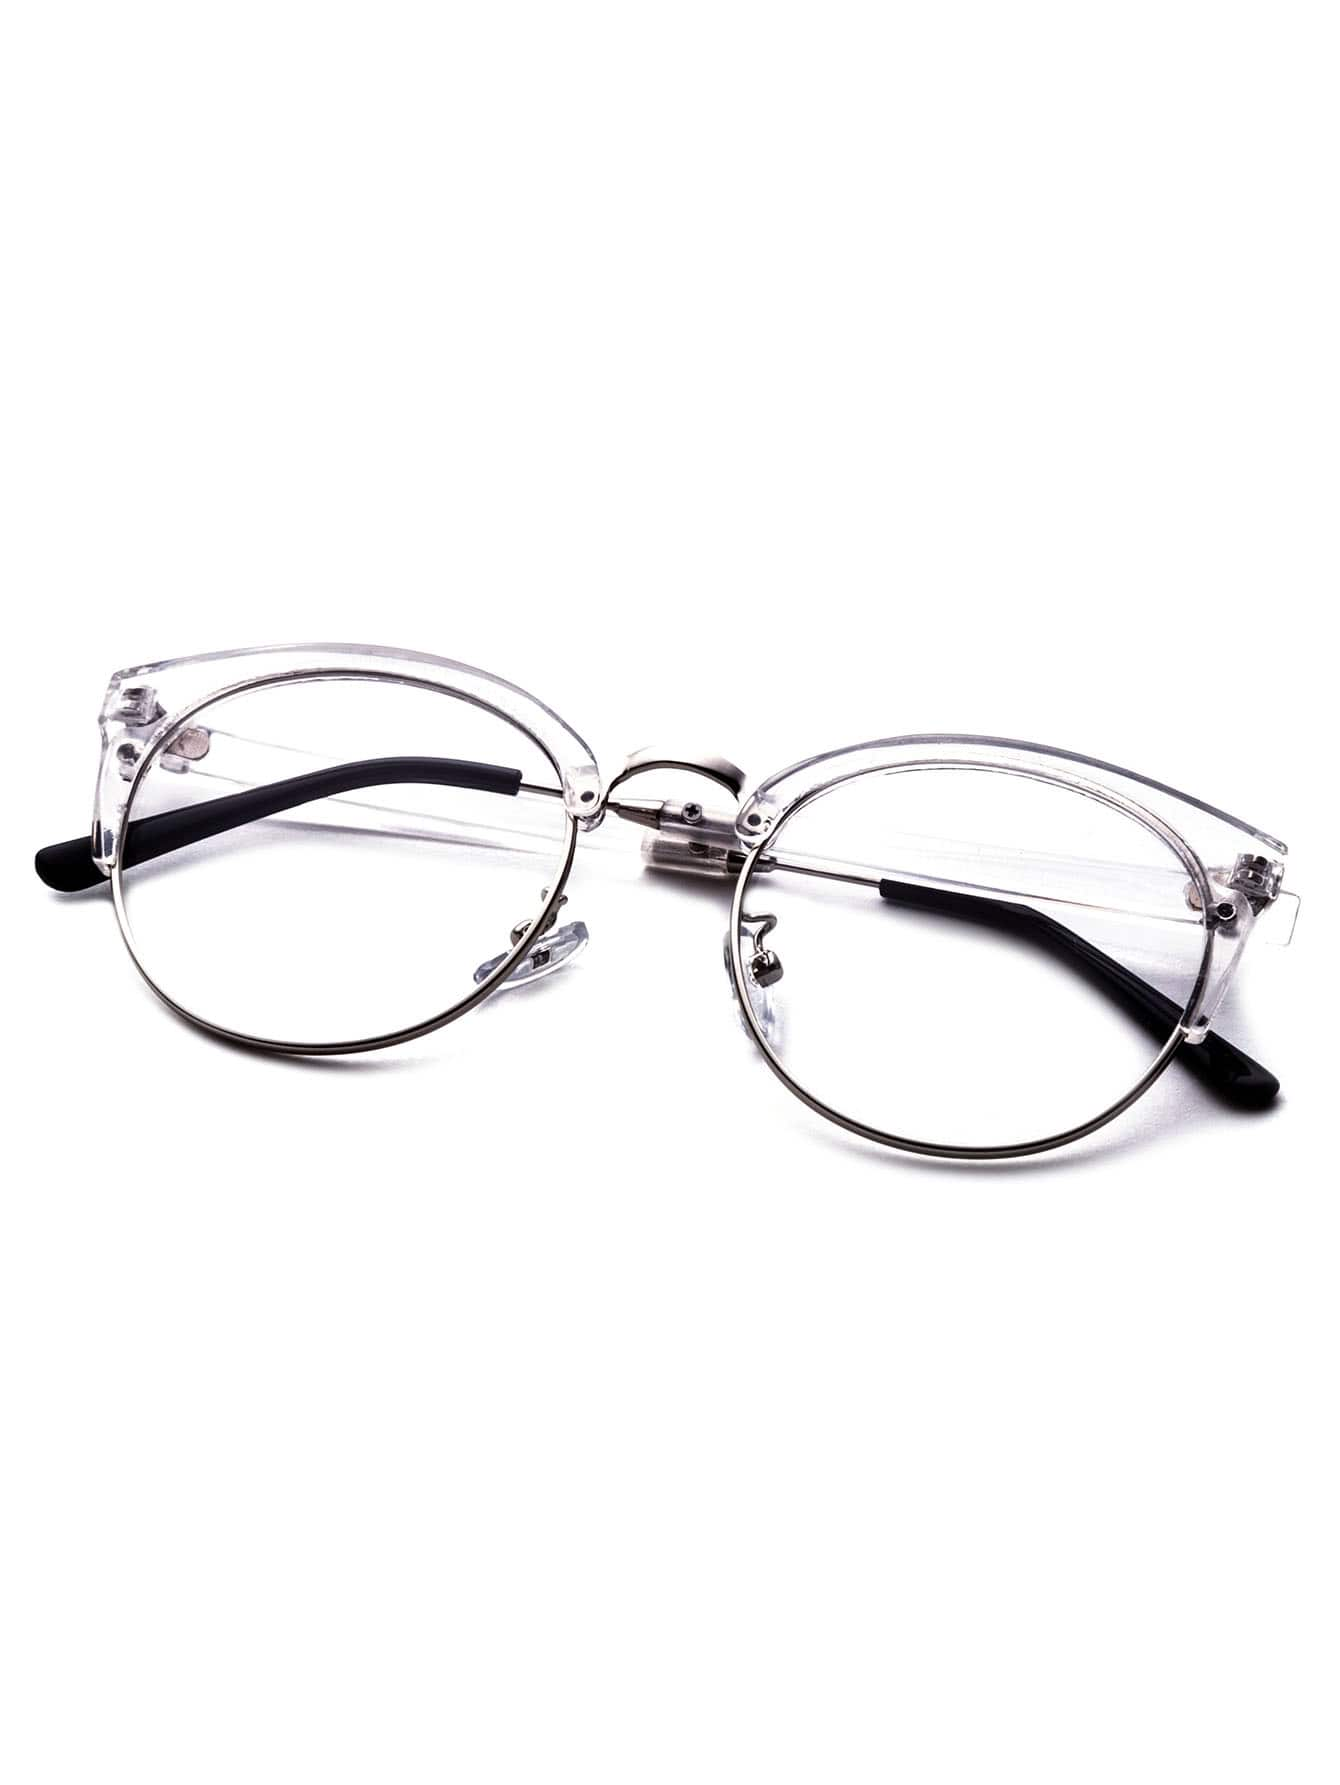 Rimless Clear Glasses : Clear Frame Semi Rimless Metal Trim Glasses -SheIn(Sheinside)